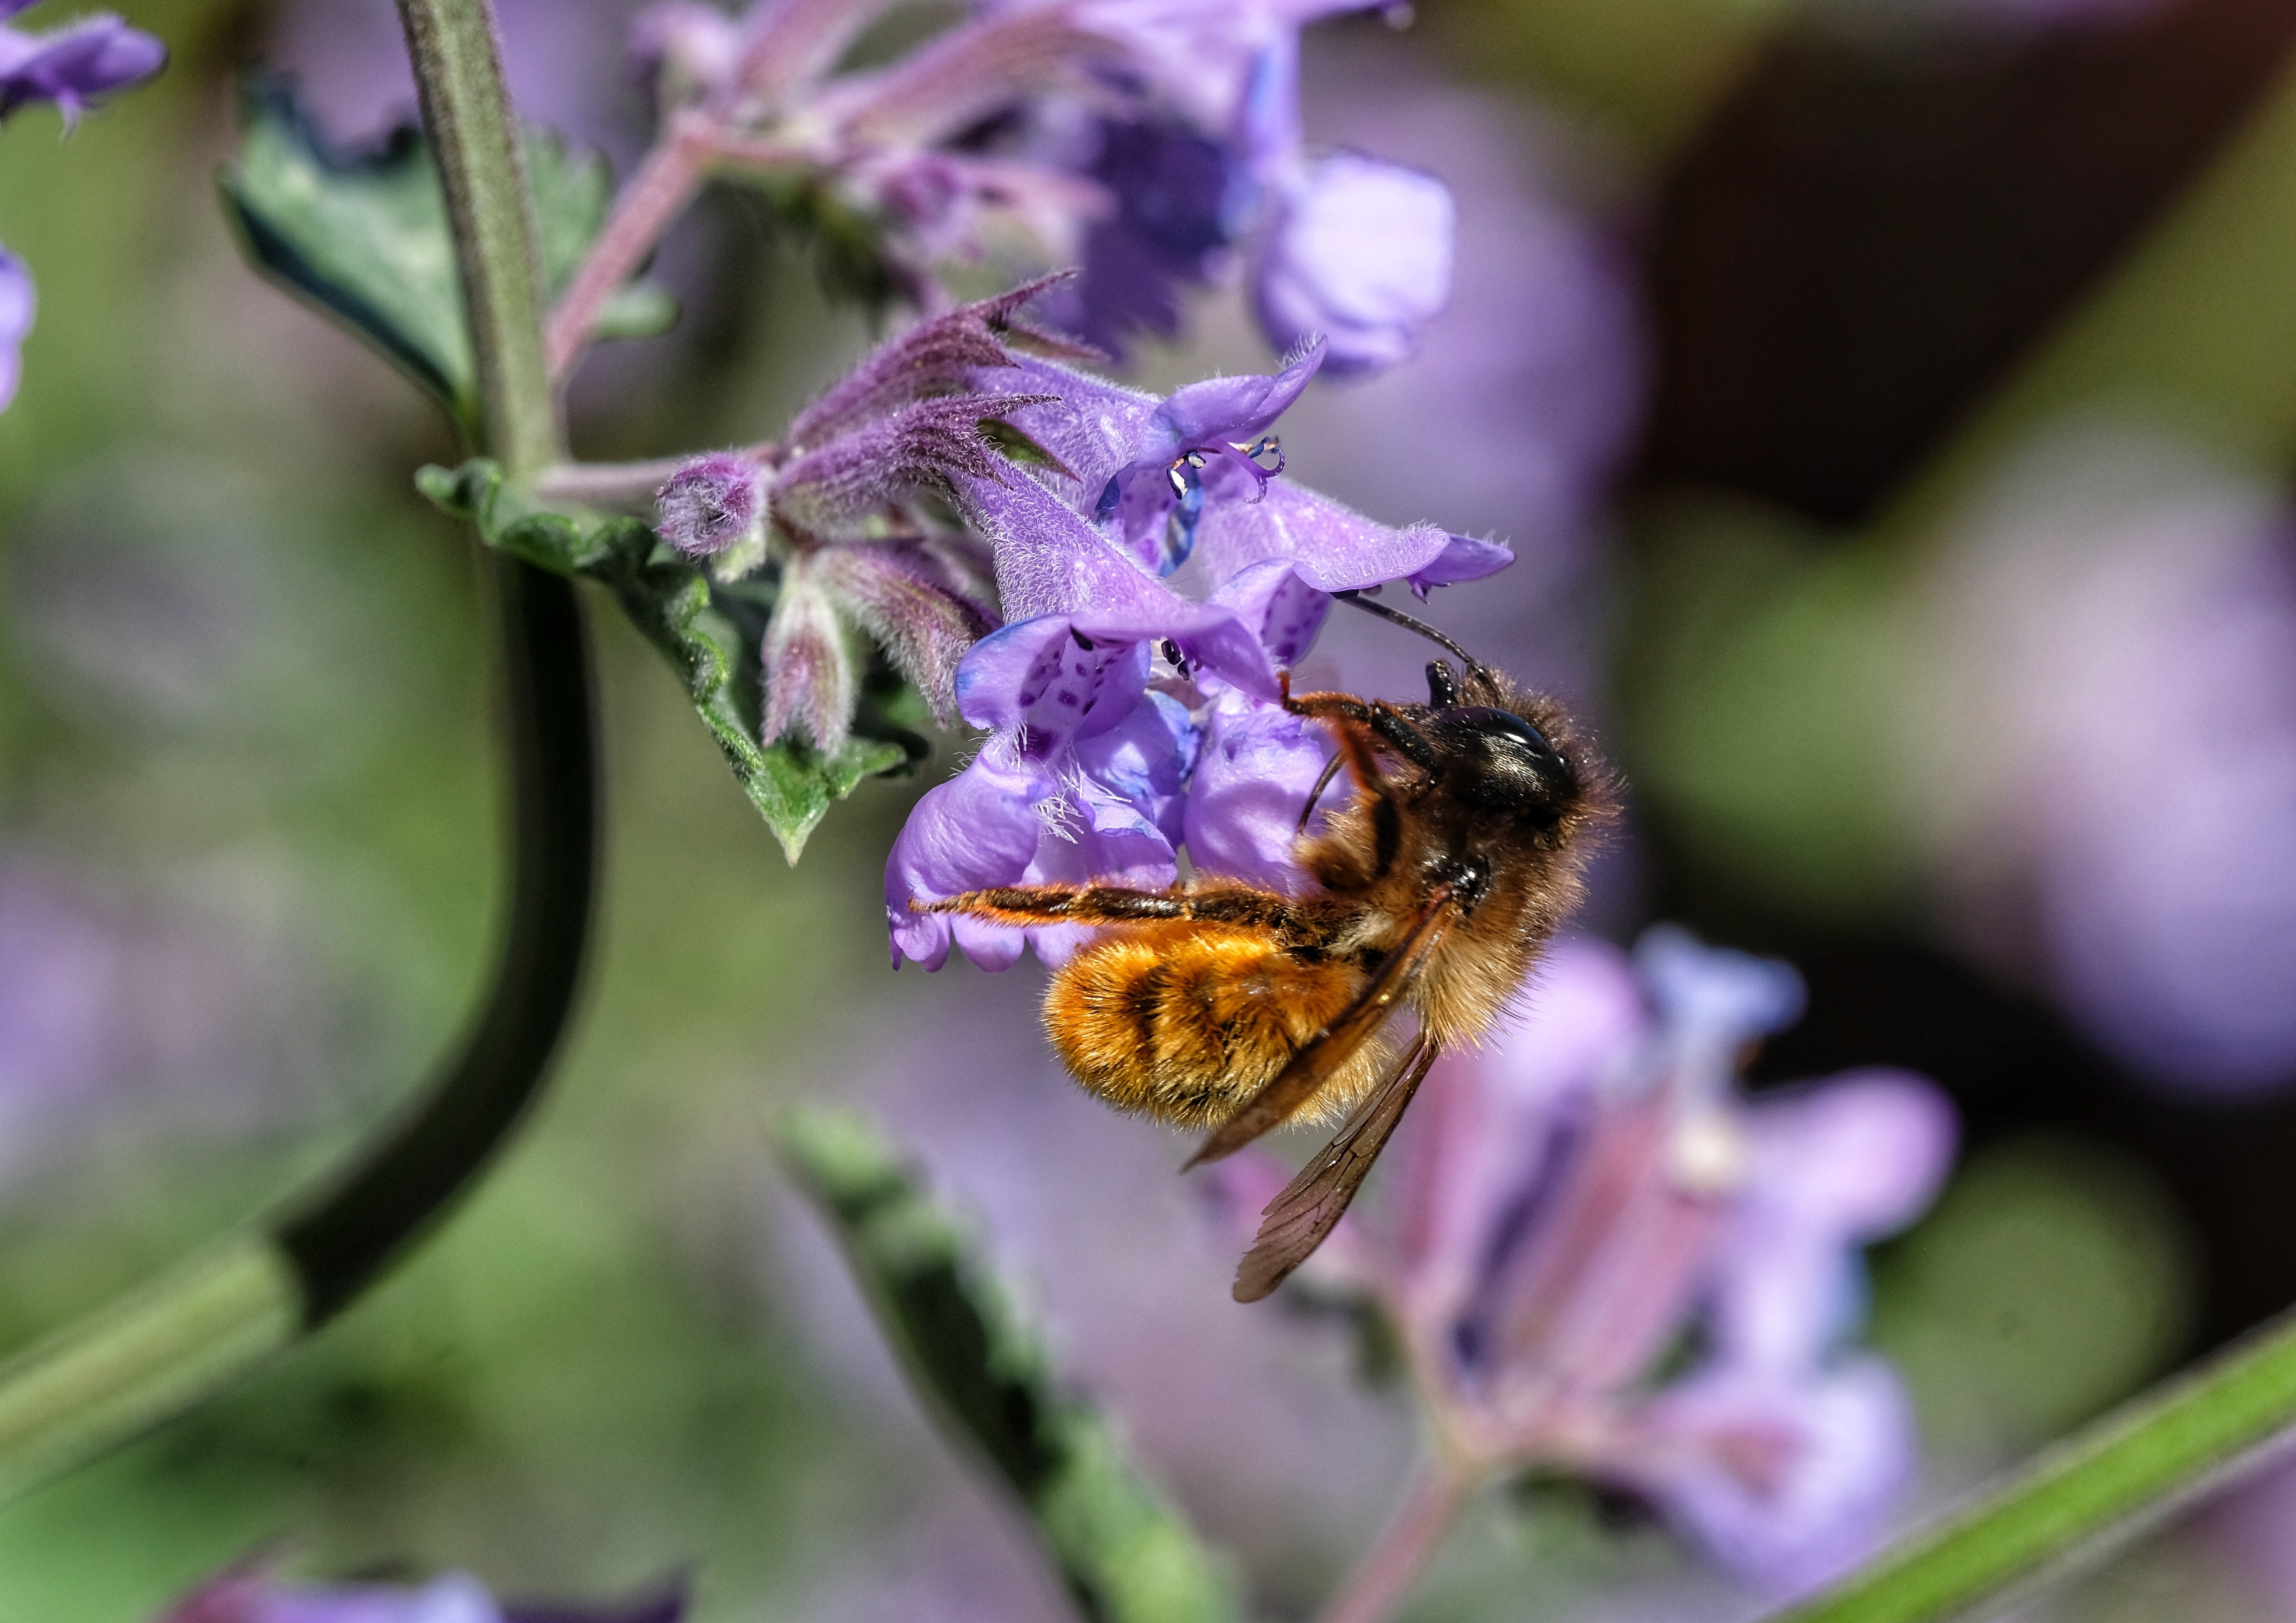 Image of bee pollinating a purple flower